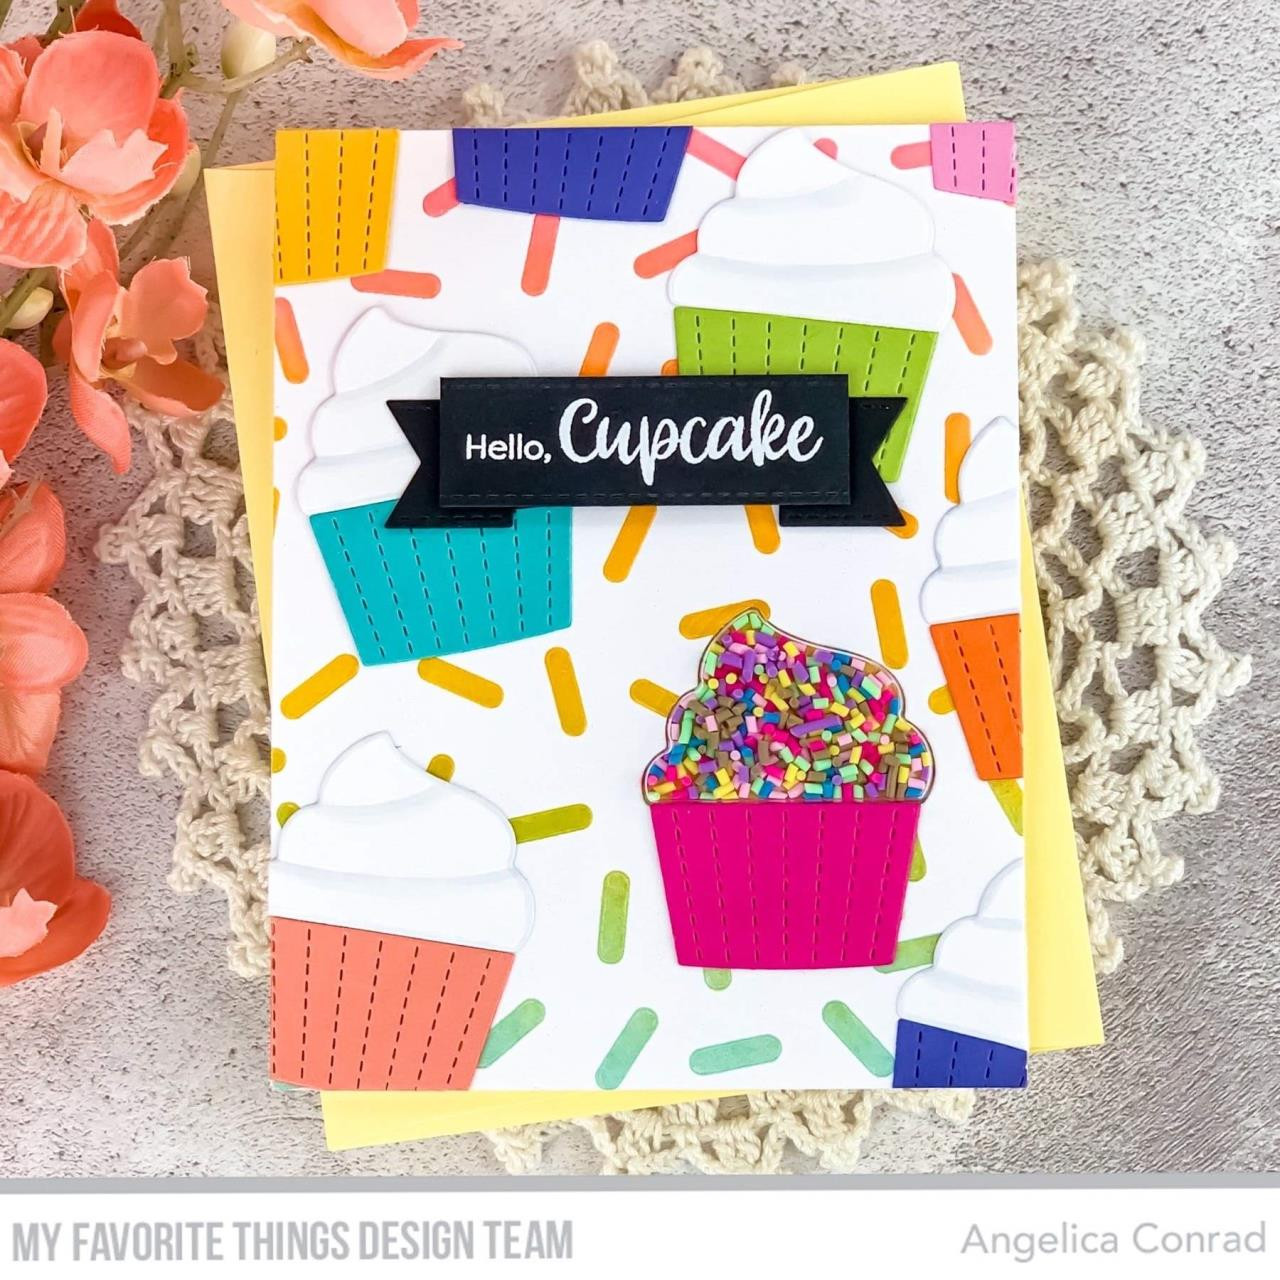 Cupcake, My Favorite Things Shaker Pouches - 849923034811